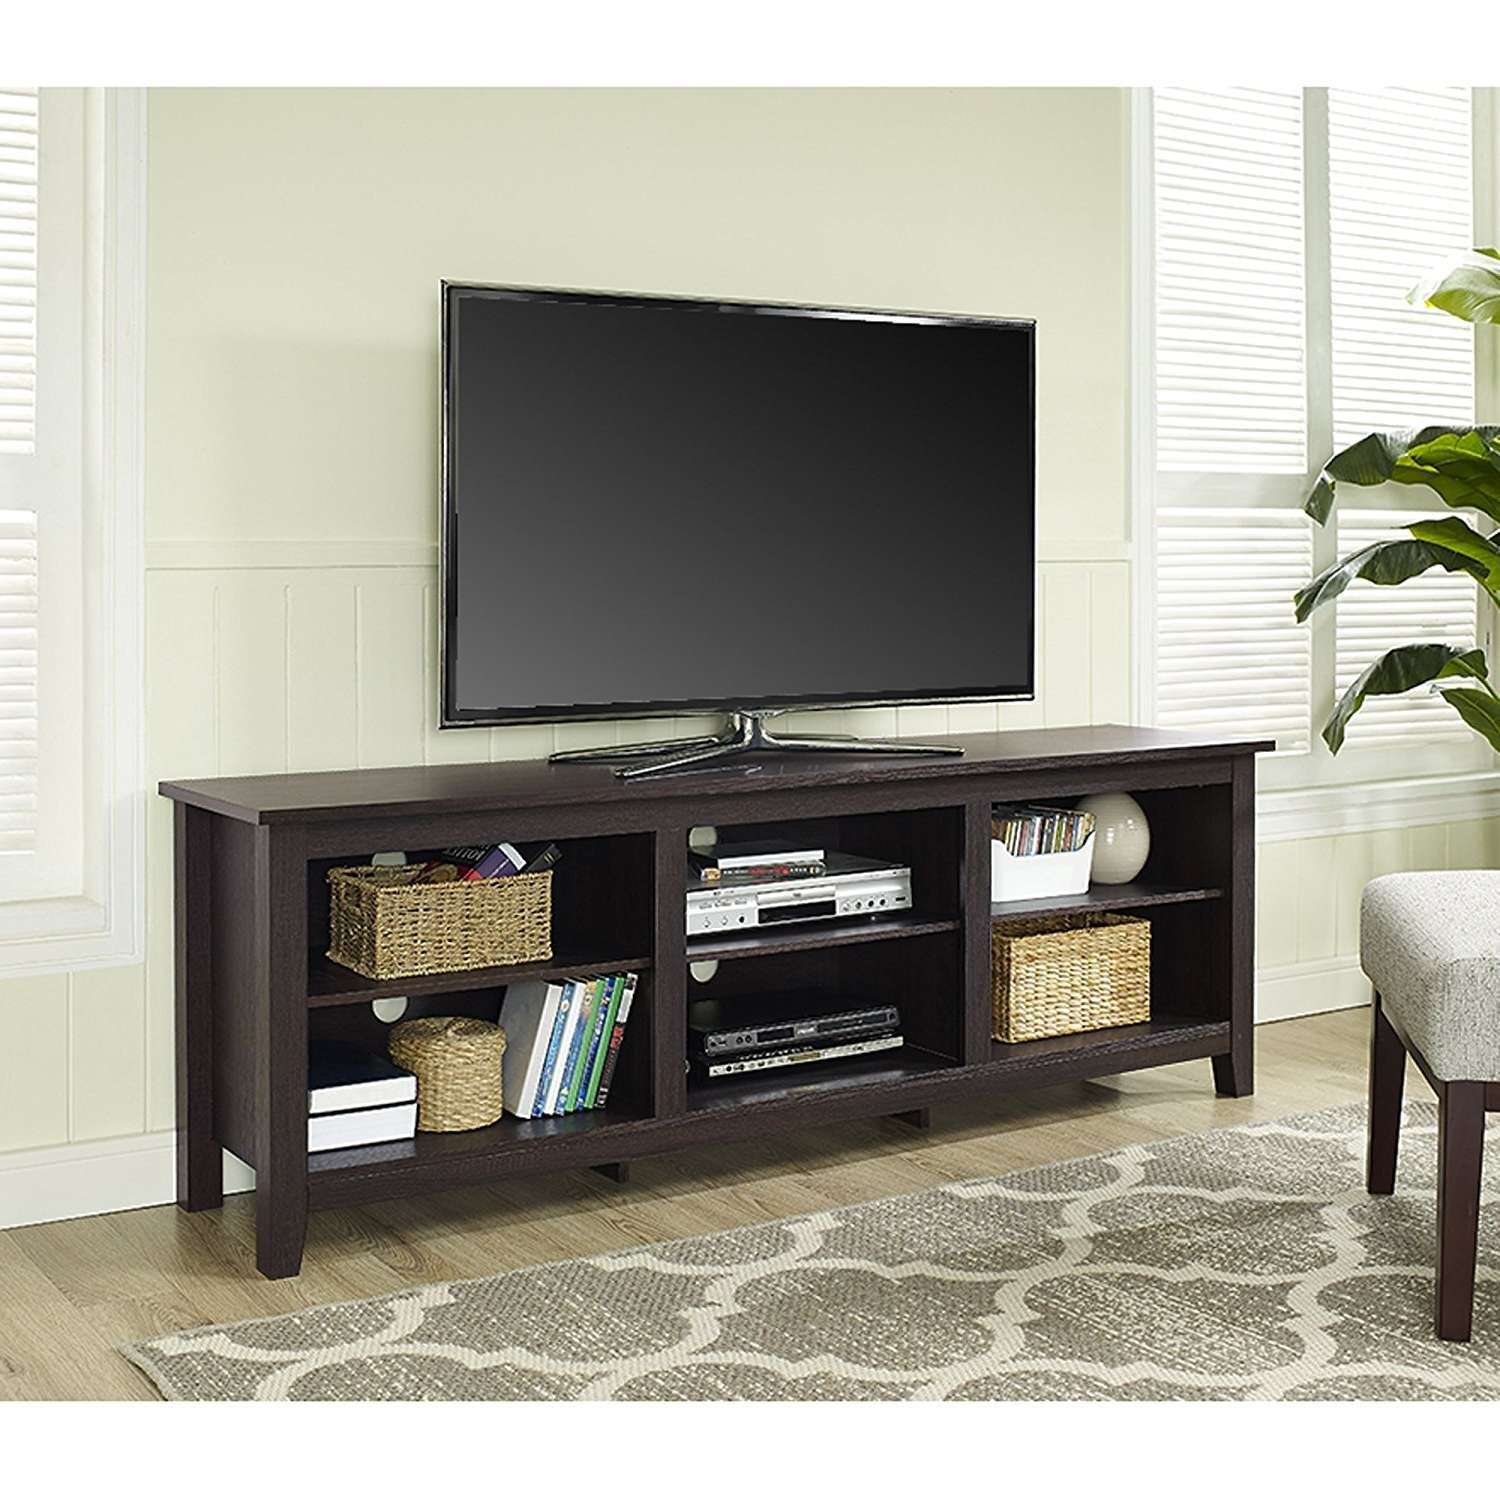 Bedroom : Universal Tv Stand Tall Tv Unit 40 Inch Tall Tv Stand With 40 Inch Corner Tv Stands (View 13 of 15)